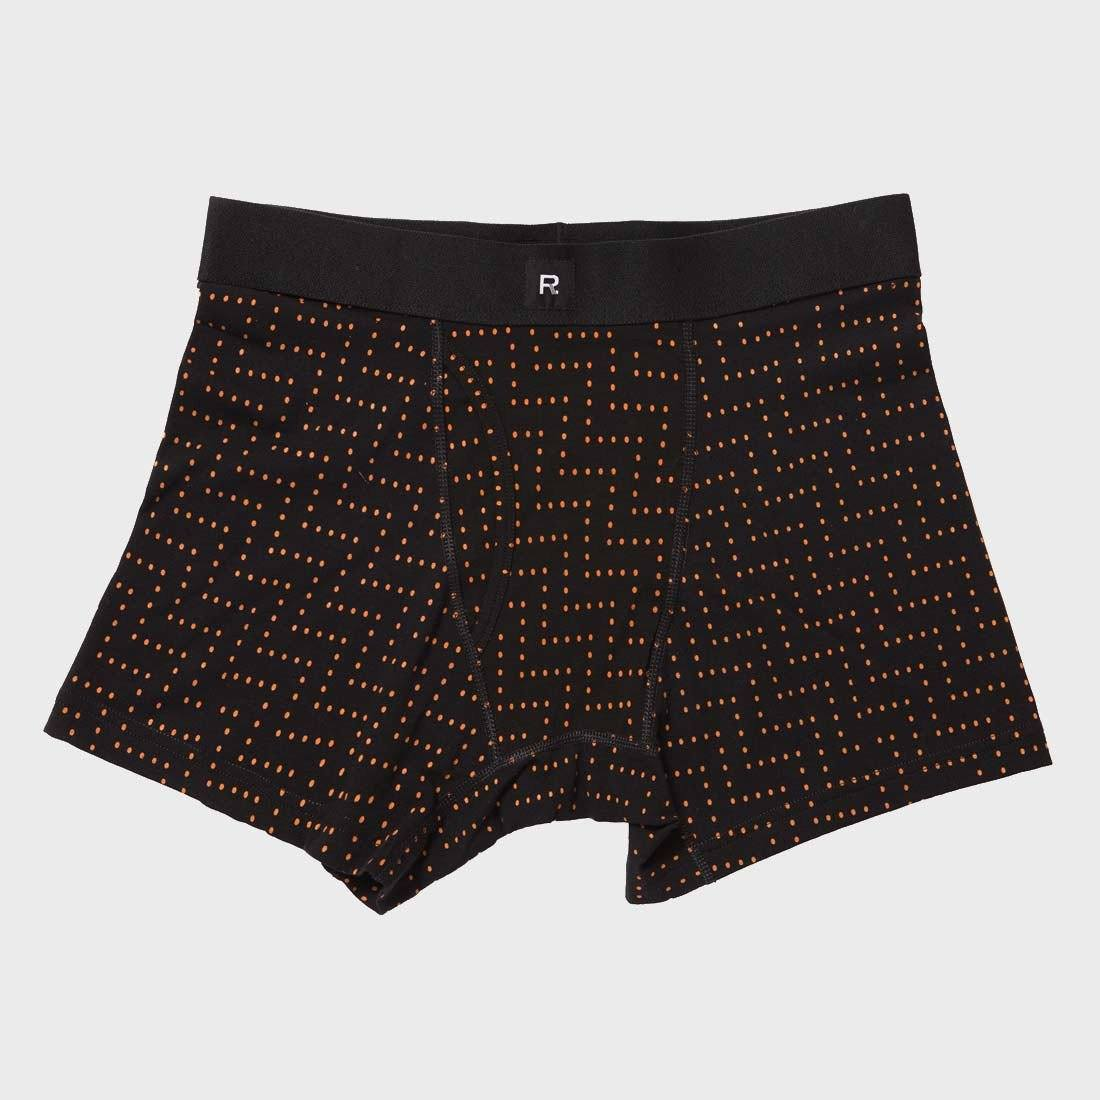 Richer Poorer Leonard Casual Boxer Brief Black